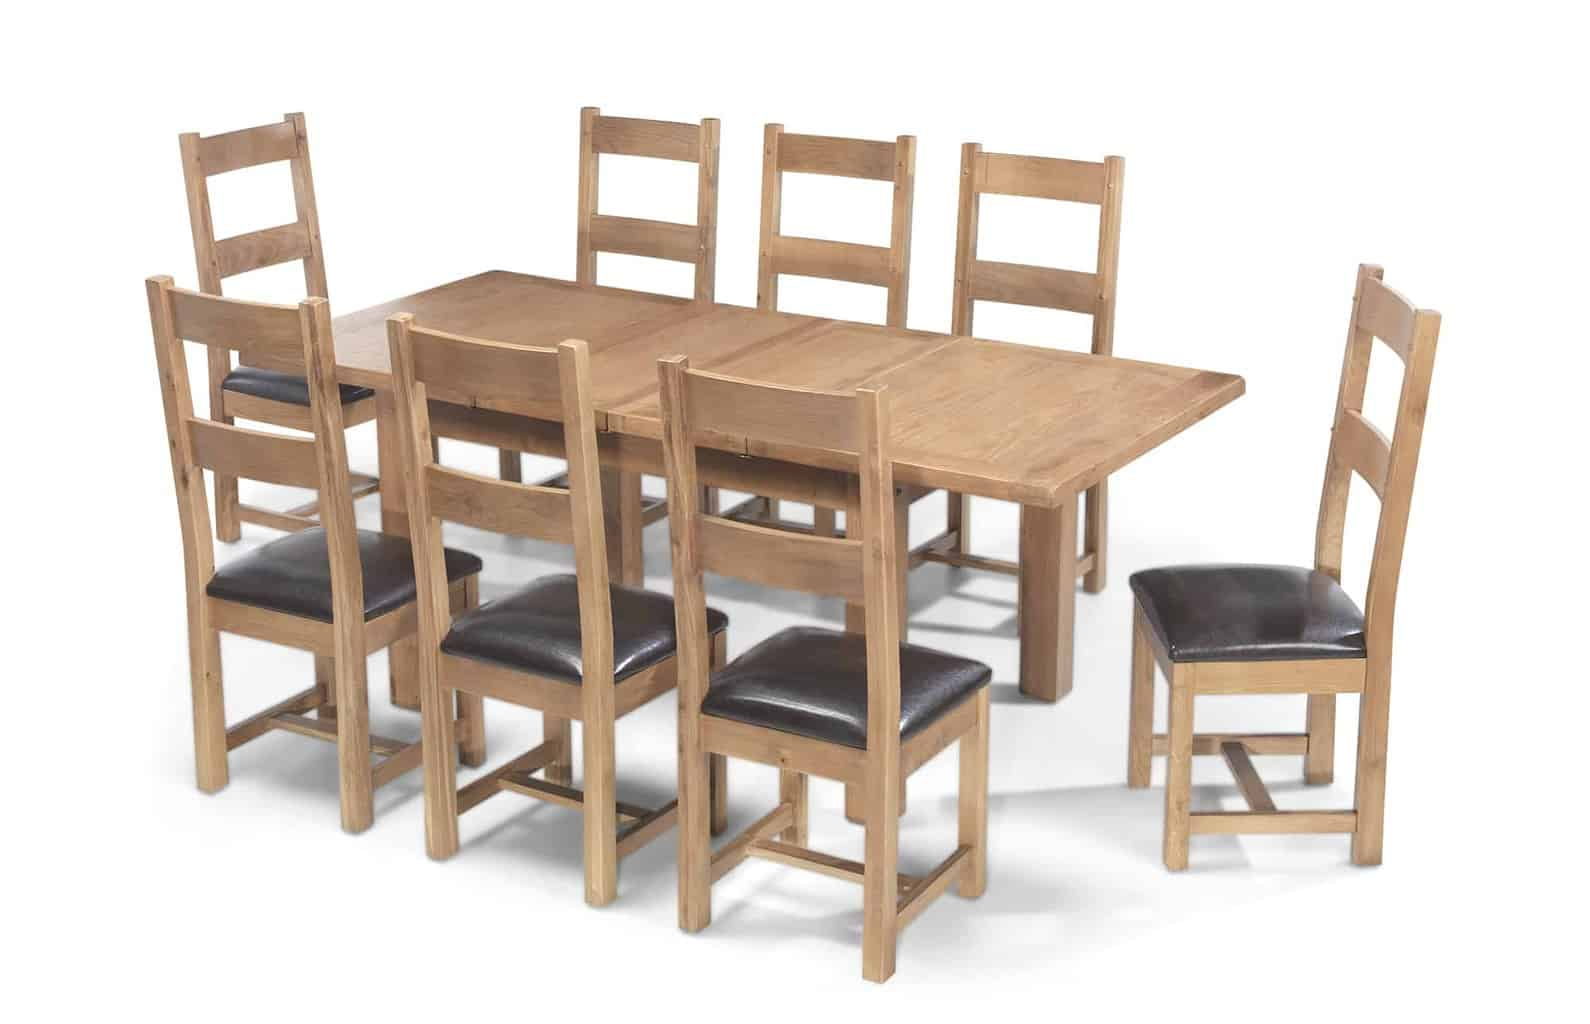 8 Chair Dining Set Aylesbury Solid Wood Rustic Oak Large Extending Dining Table With 8 Chairs